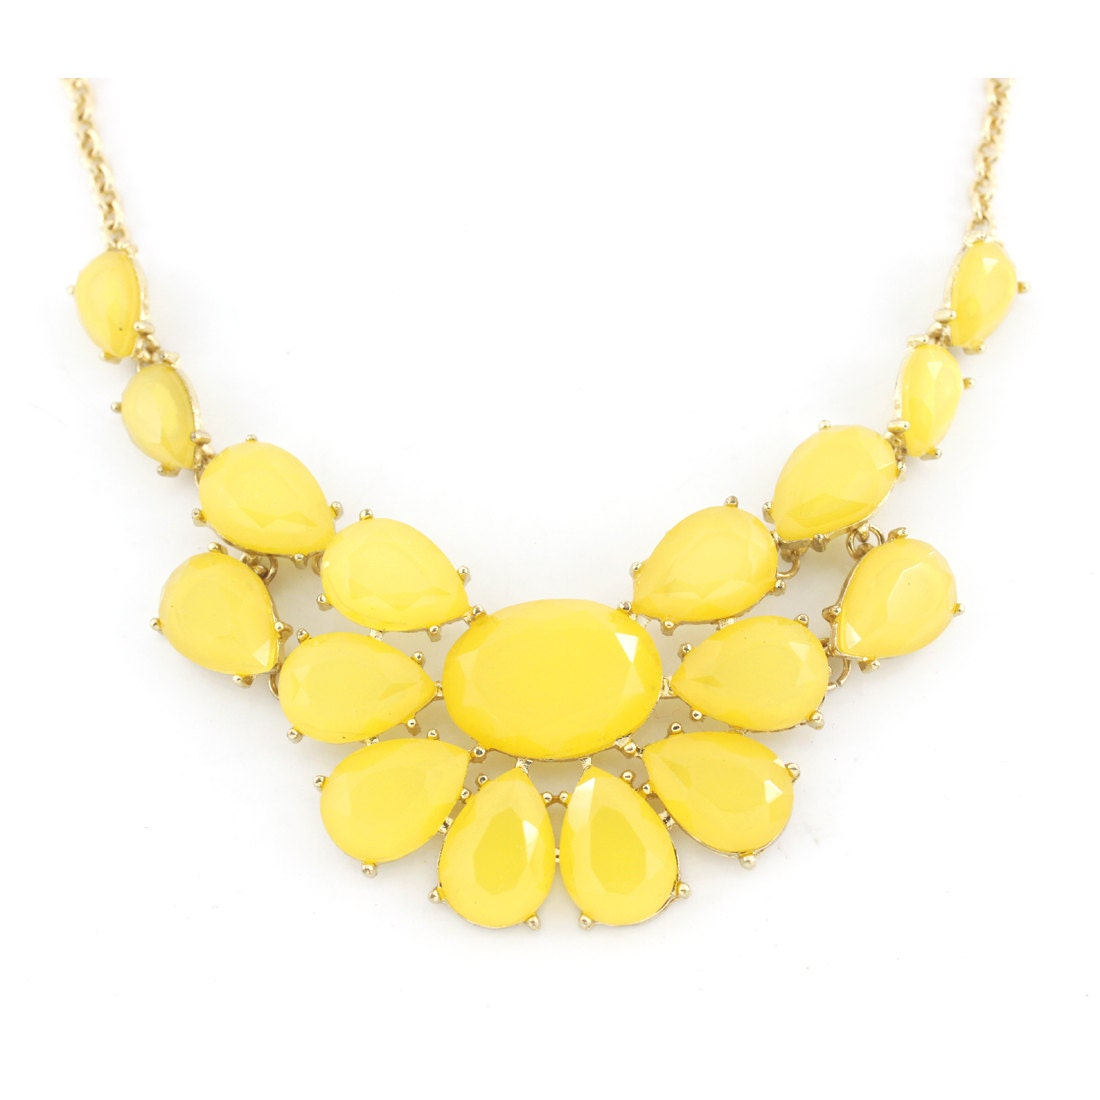 Shop for and buy yellow statement necklace online at Macy's. Find yellow statement necklace at Macy's.